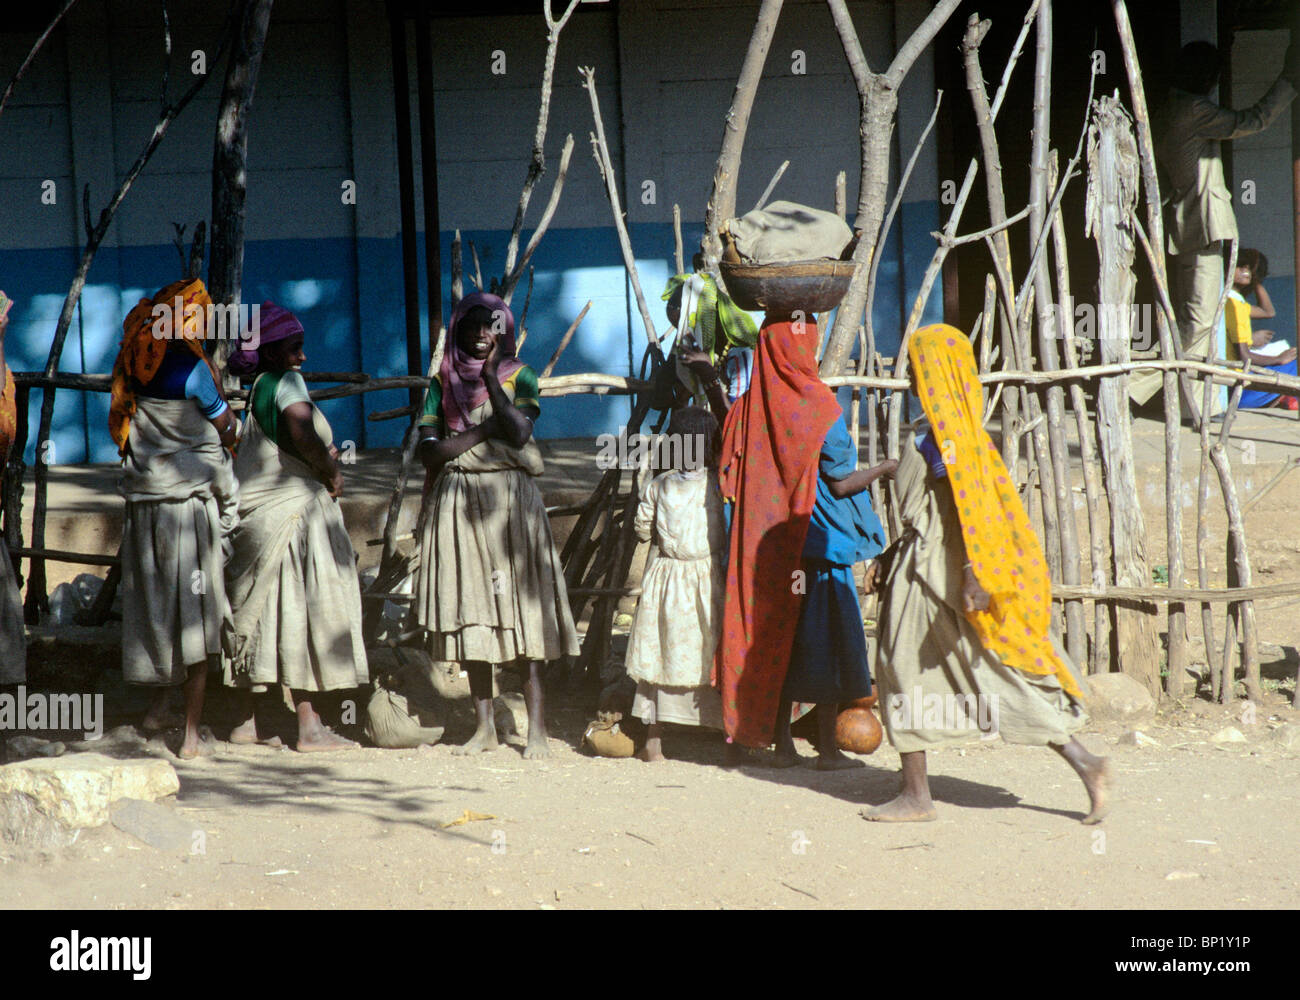 women waiting for shared lorry taxi - town of harar - region of harari - ethiopia - Stock Image